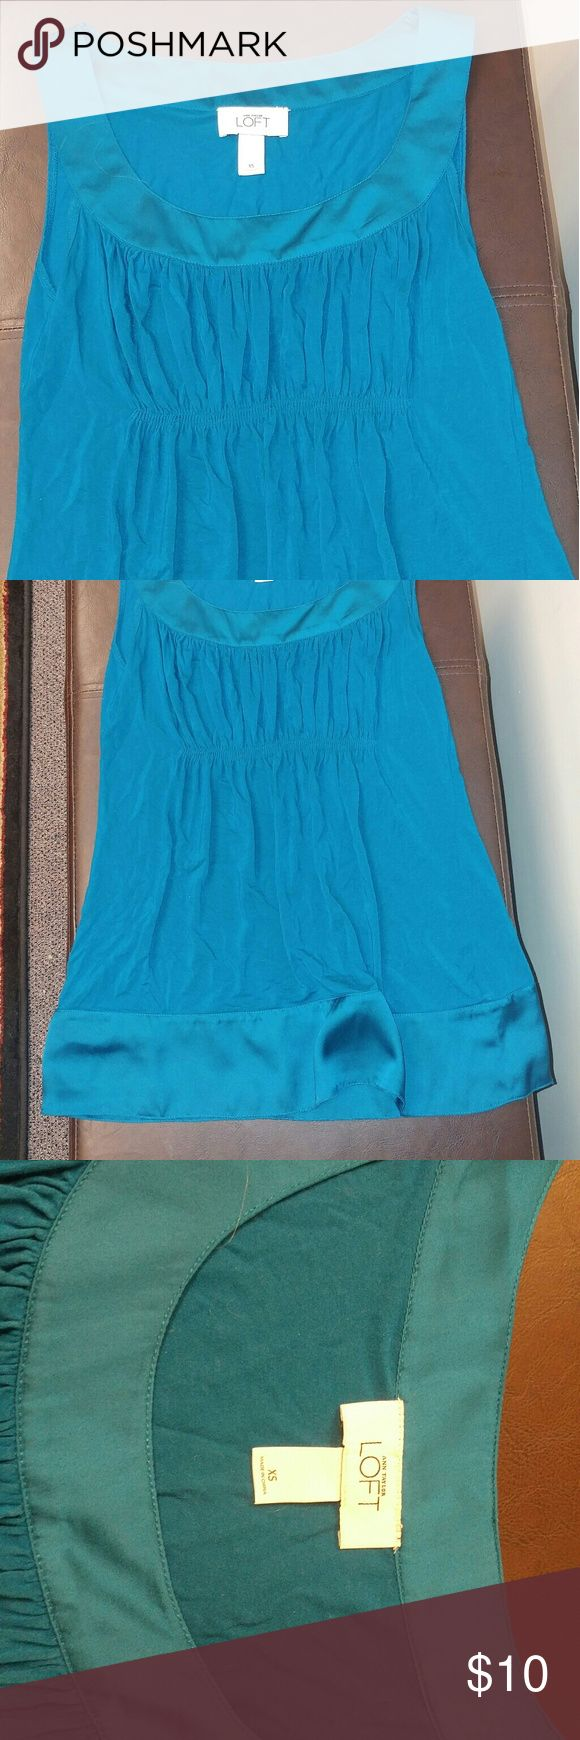 Ann taylor loft teal shirt size xs Ann taylor loft teal top. Size xs. Made of rayon, lycra, and spandex. Length 26 inches. Underarm 15 inches across. ann taylor loft Tops